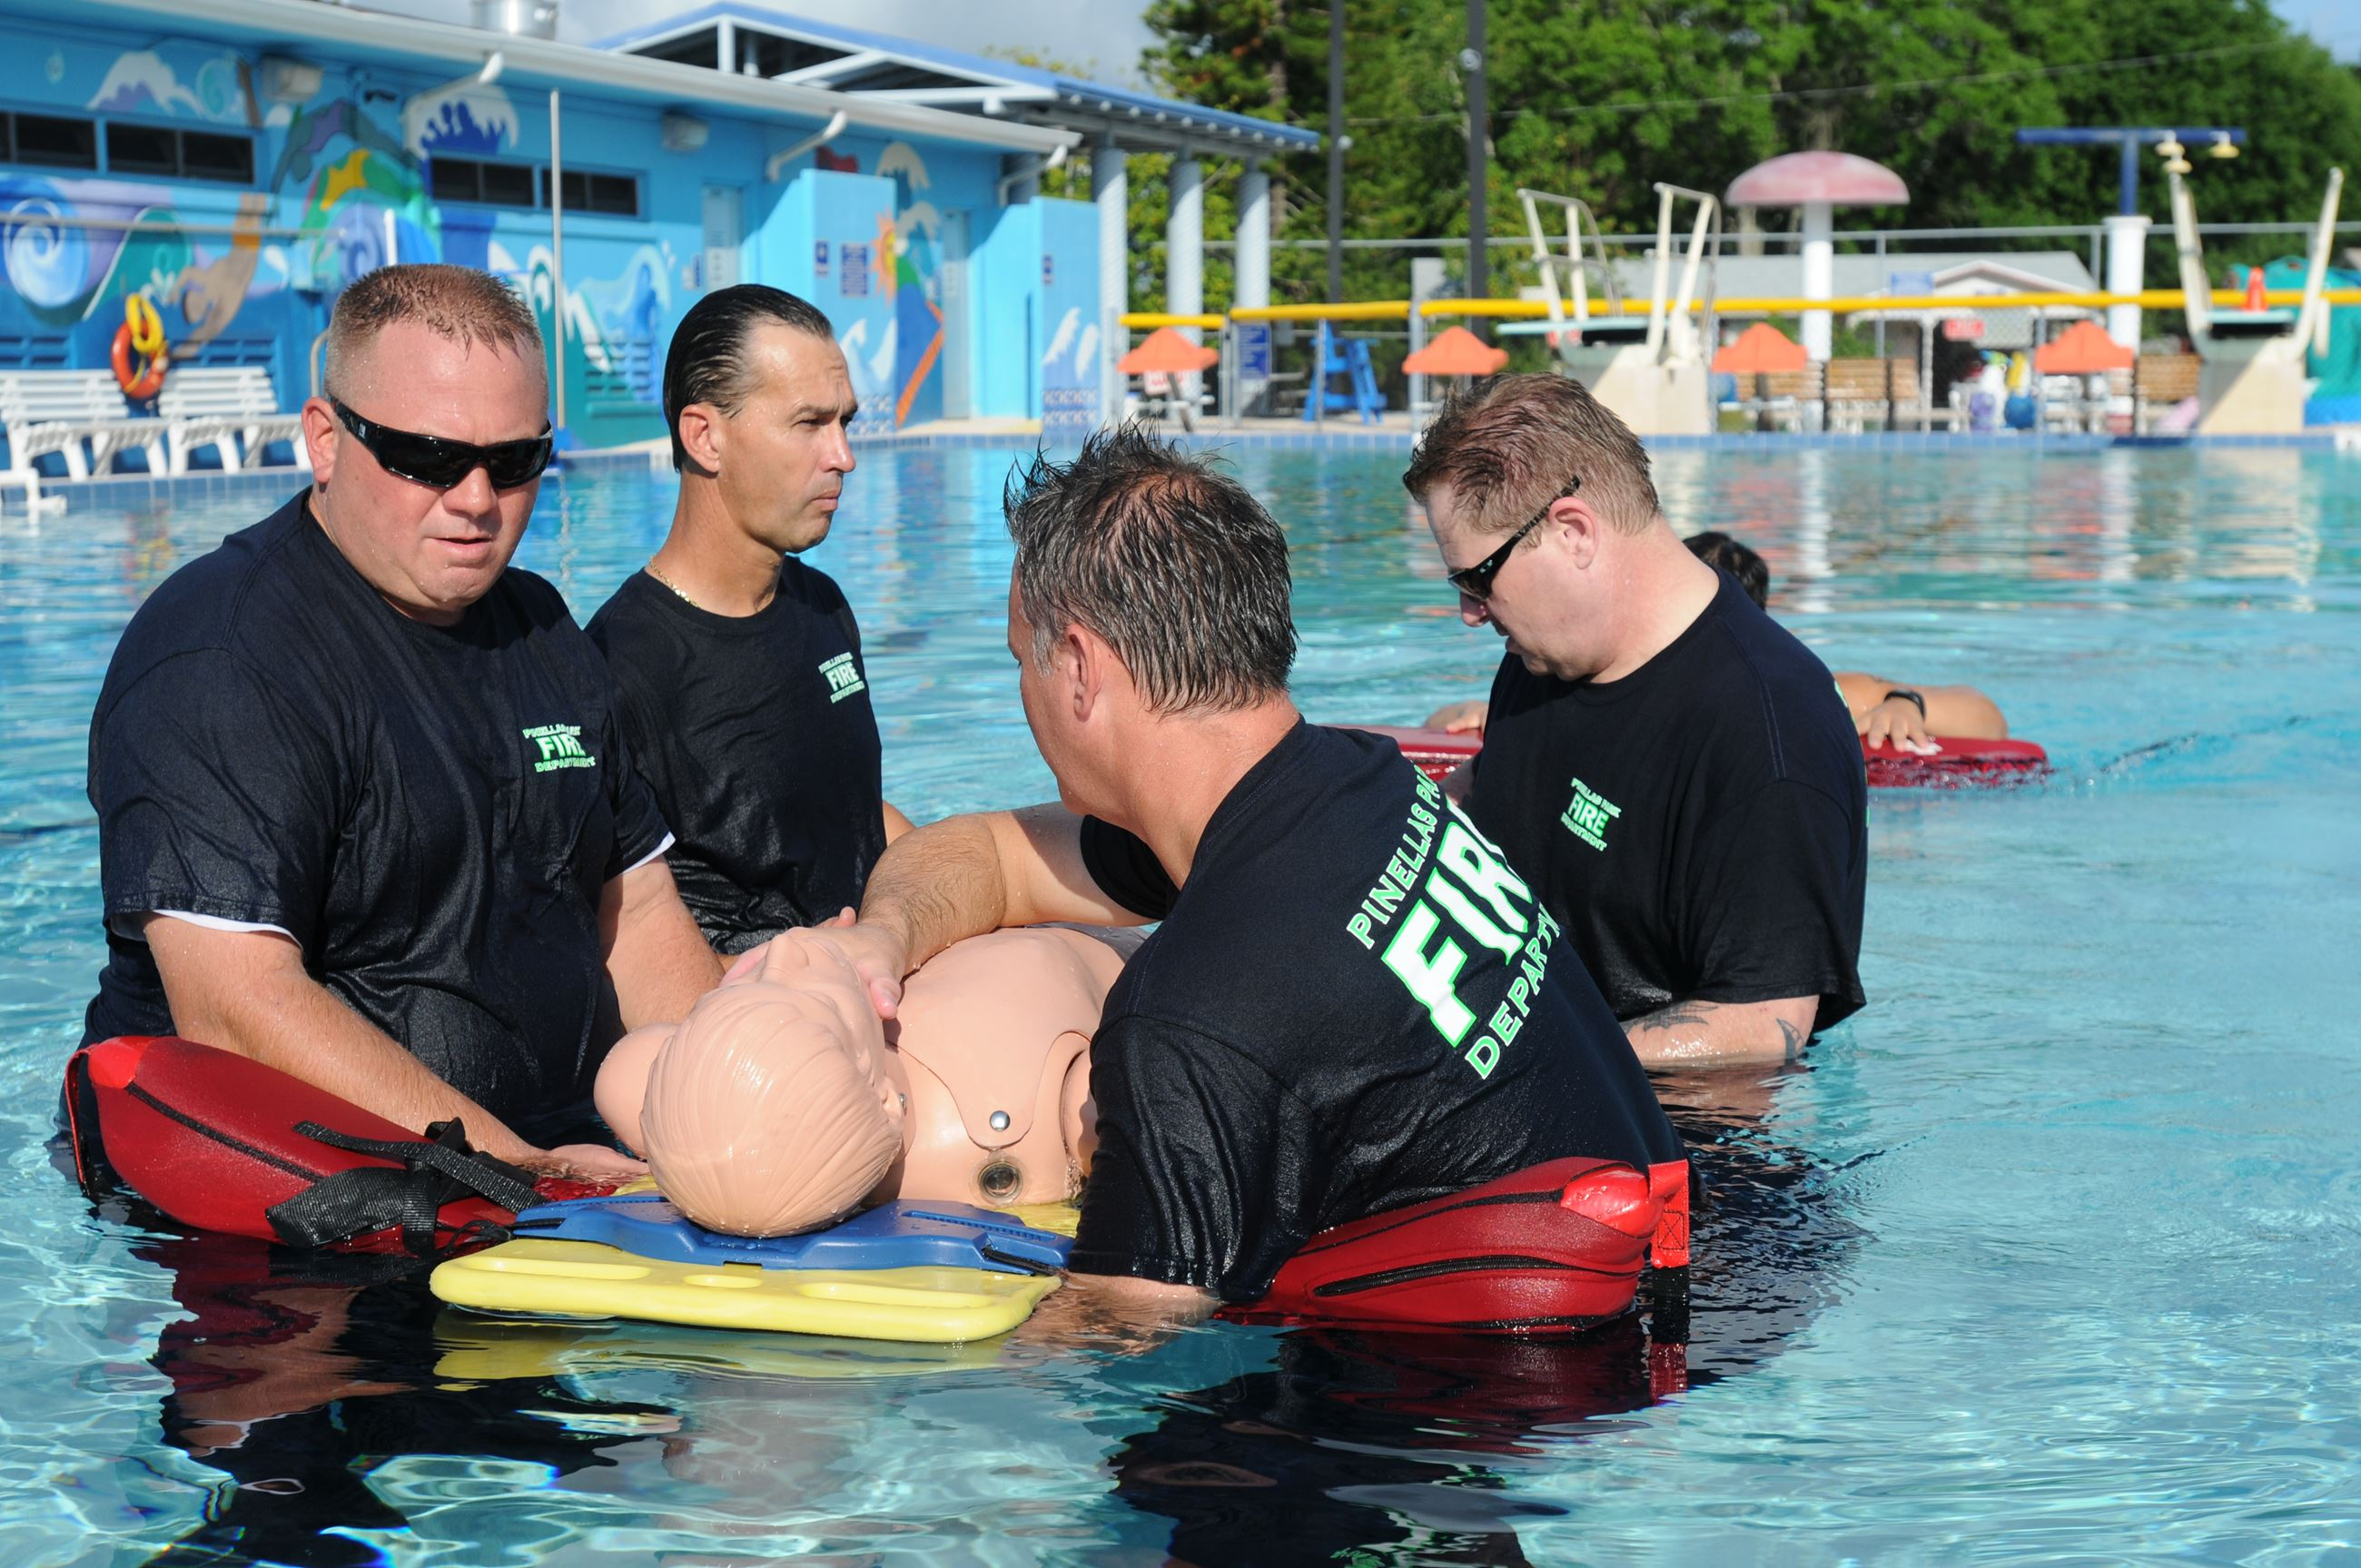 EMS trainees in a pool practicing rescuing people